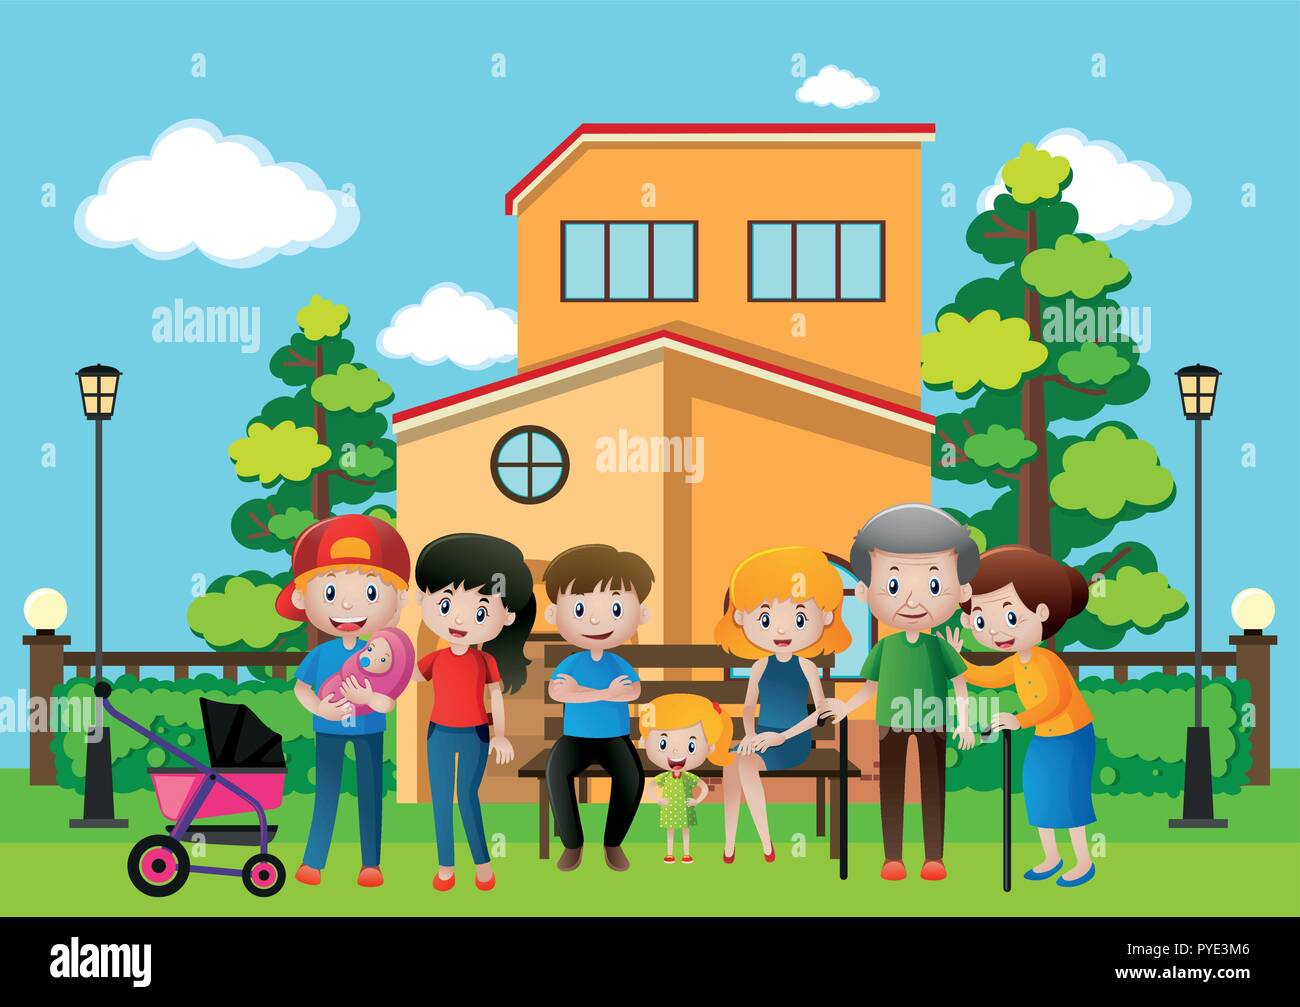 Family members at the house illustration - Stock Vector